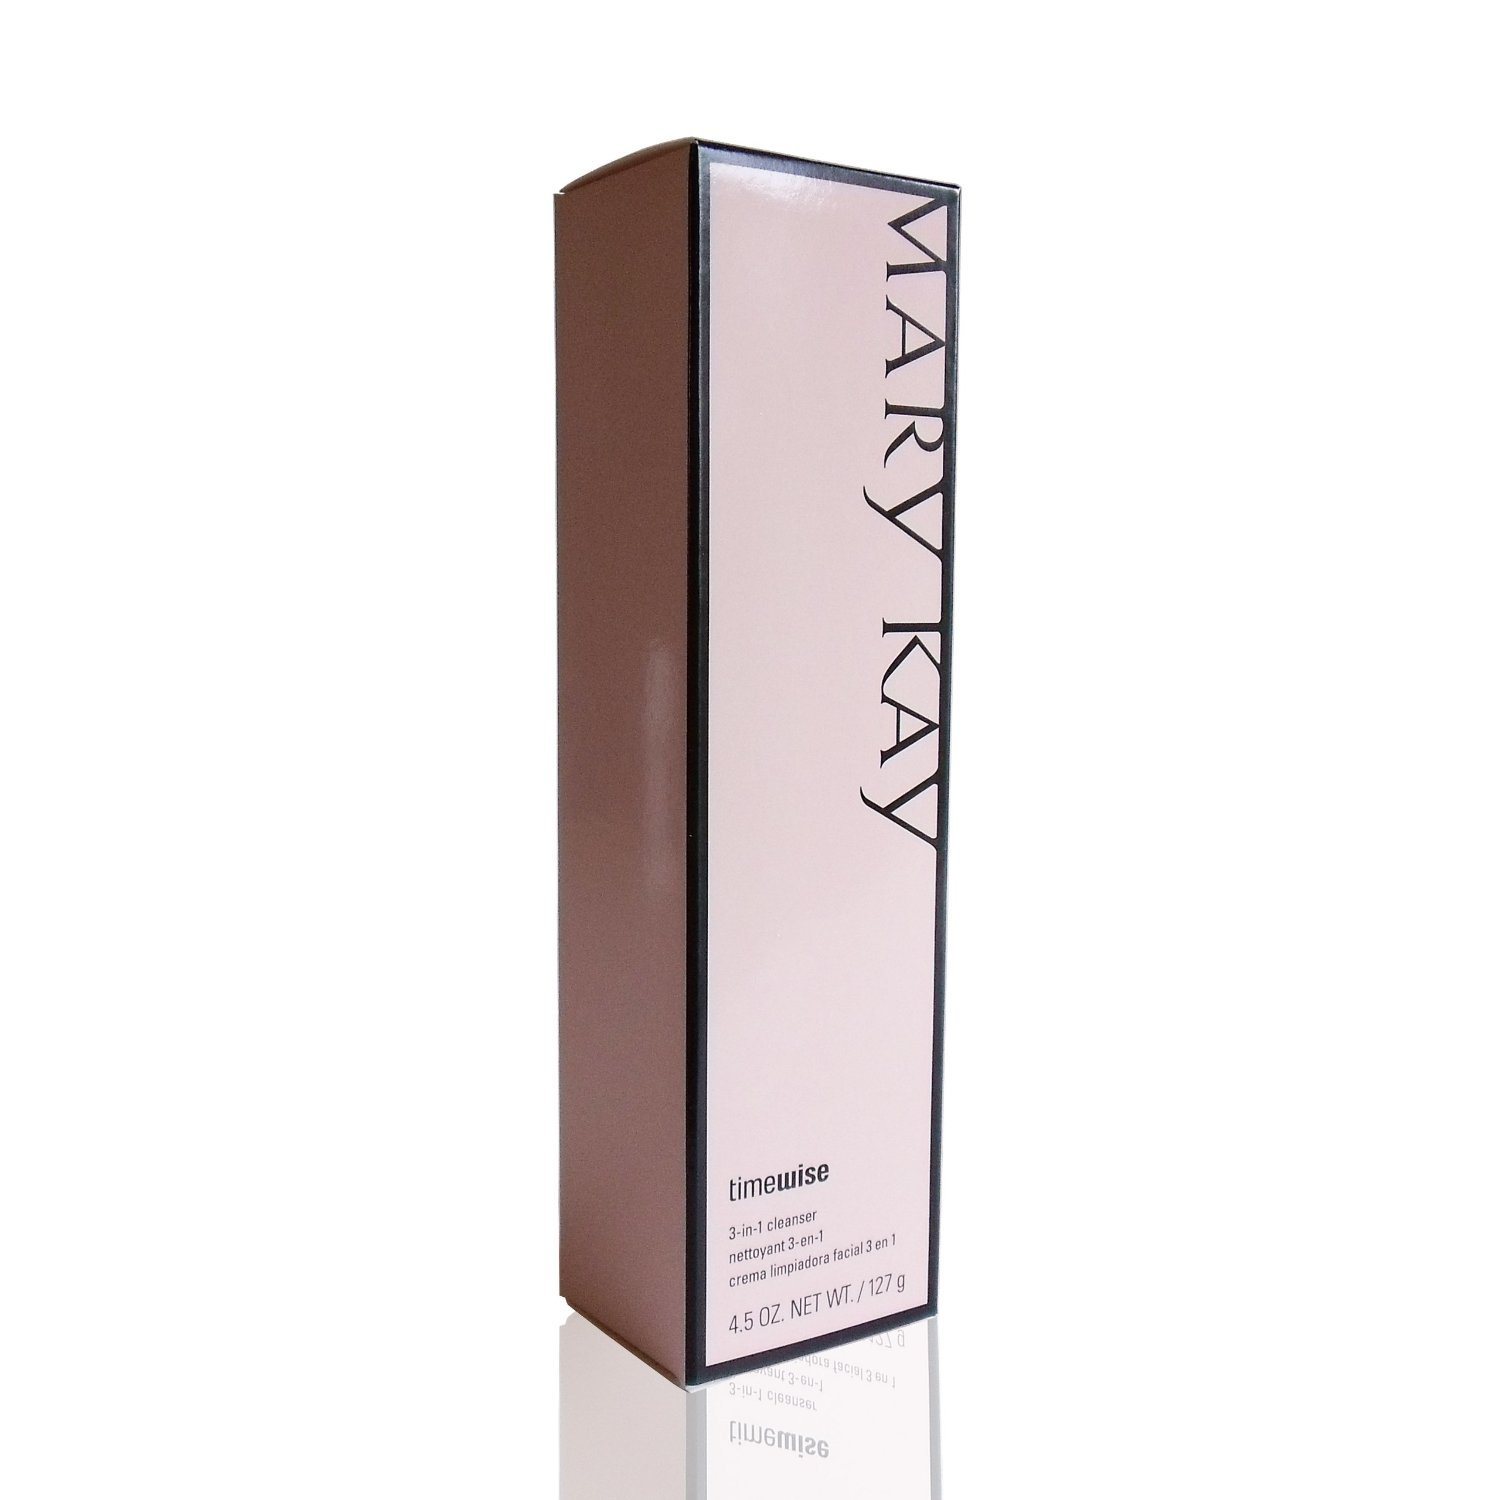 Mary Kay Timewise 3 in 1 Cleanser Normal/Dry Skin - 4.5 oz. by Mary Kay